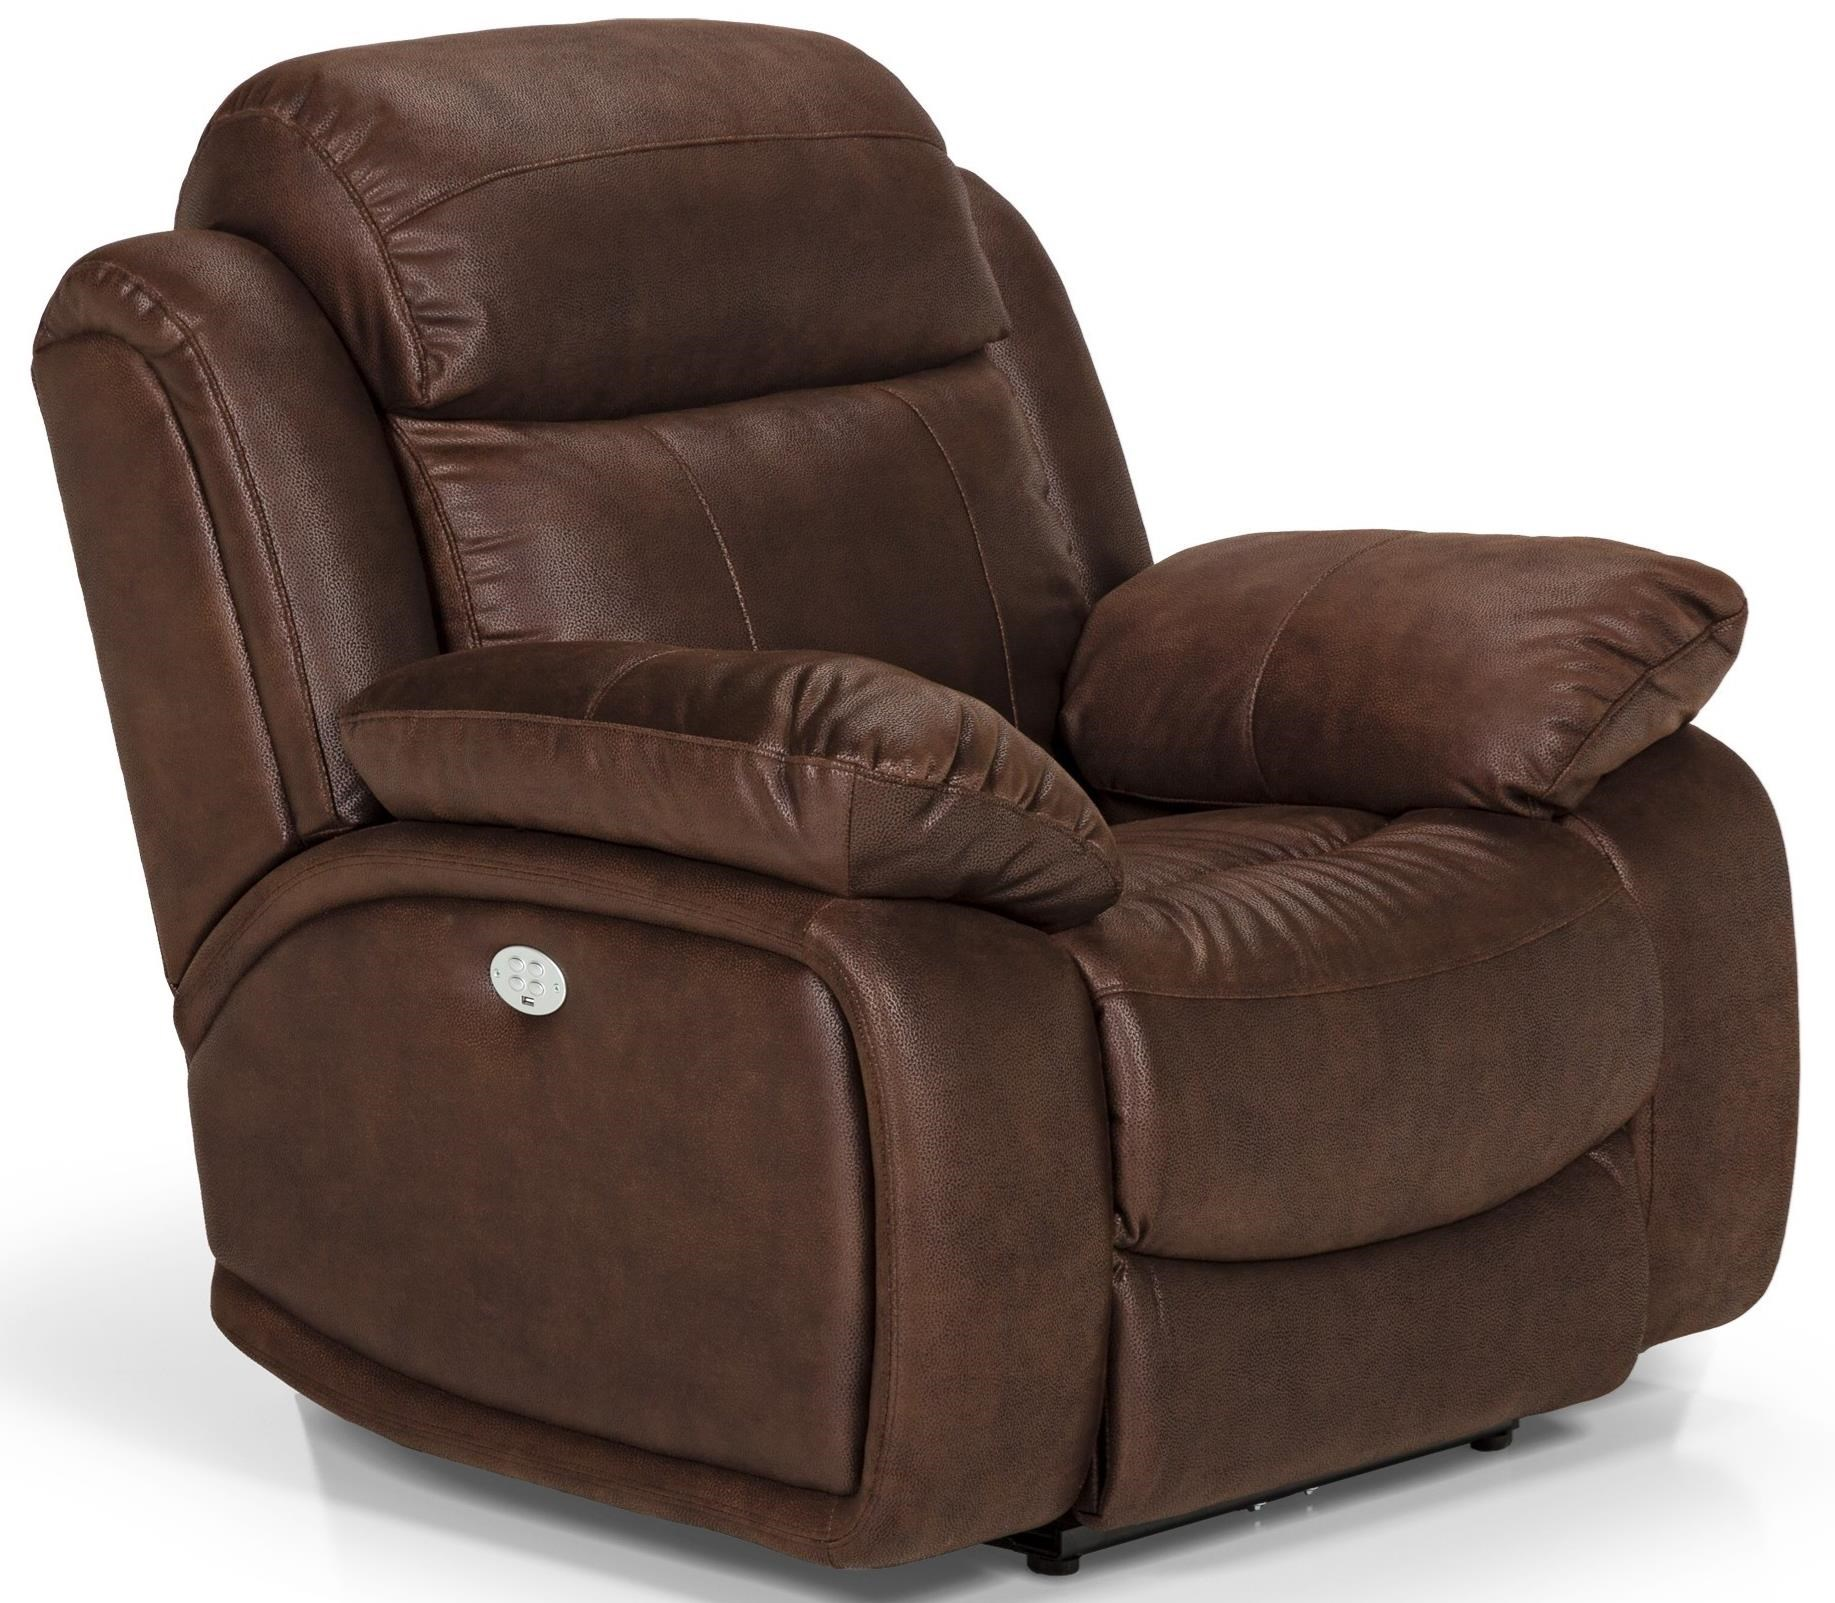 Reclining Chairs Stanton 853 Power Reclining Chair With Power Head Lumbar